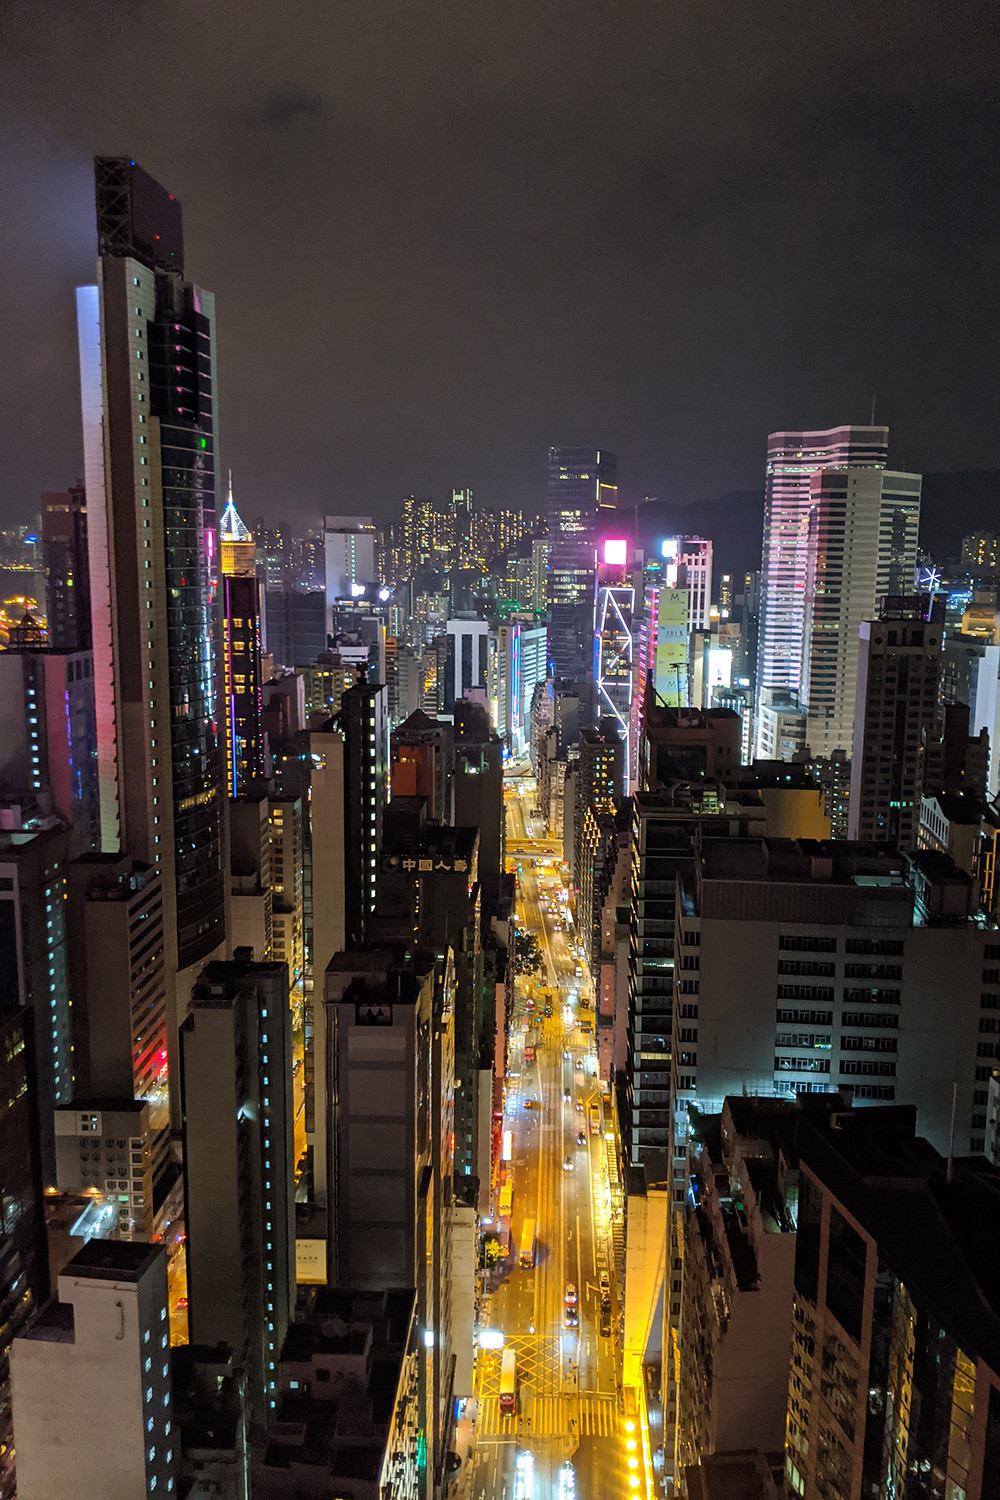 14hongkong-night-cityscape-rooftop-travel